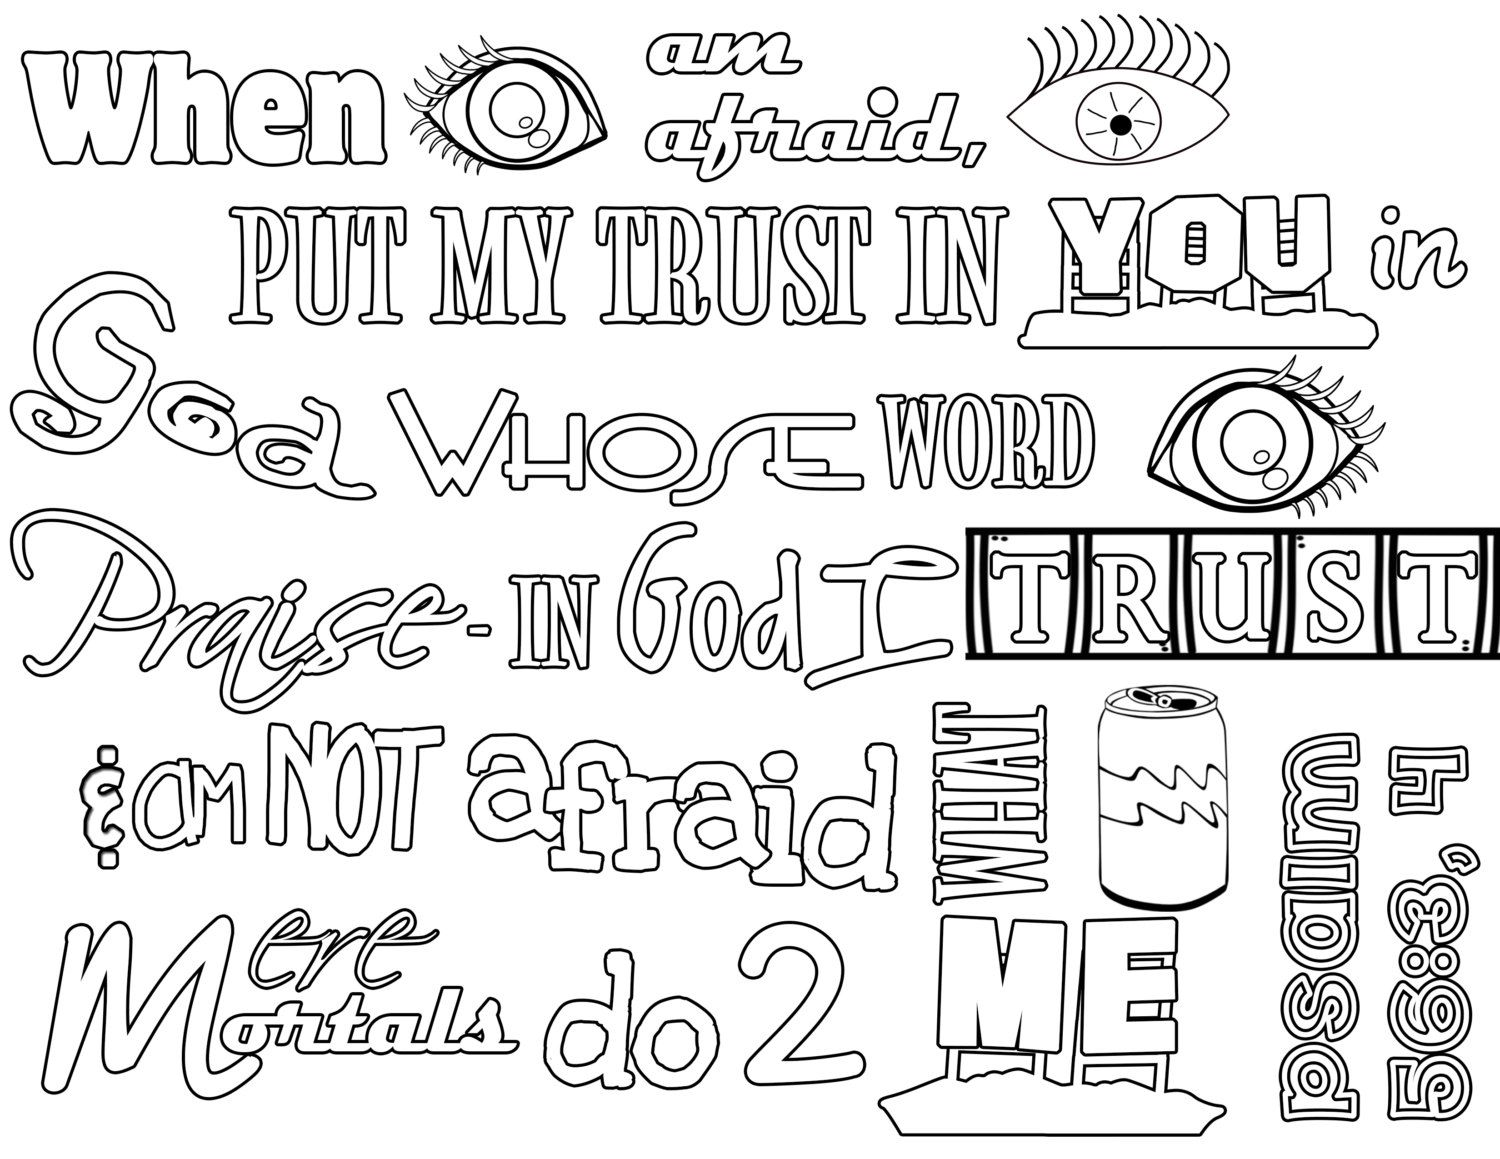 psalms 5634 niv scripture coloring page by homemakersdaily - Psalm 56 3 Coloring Page